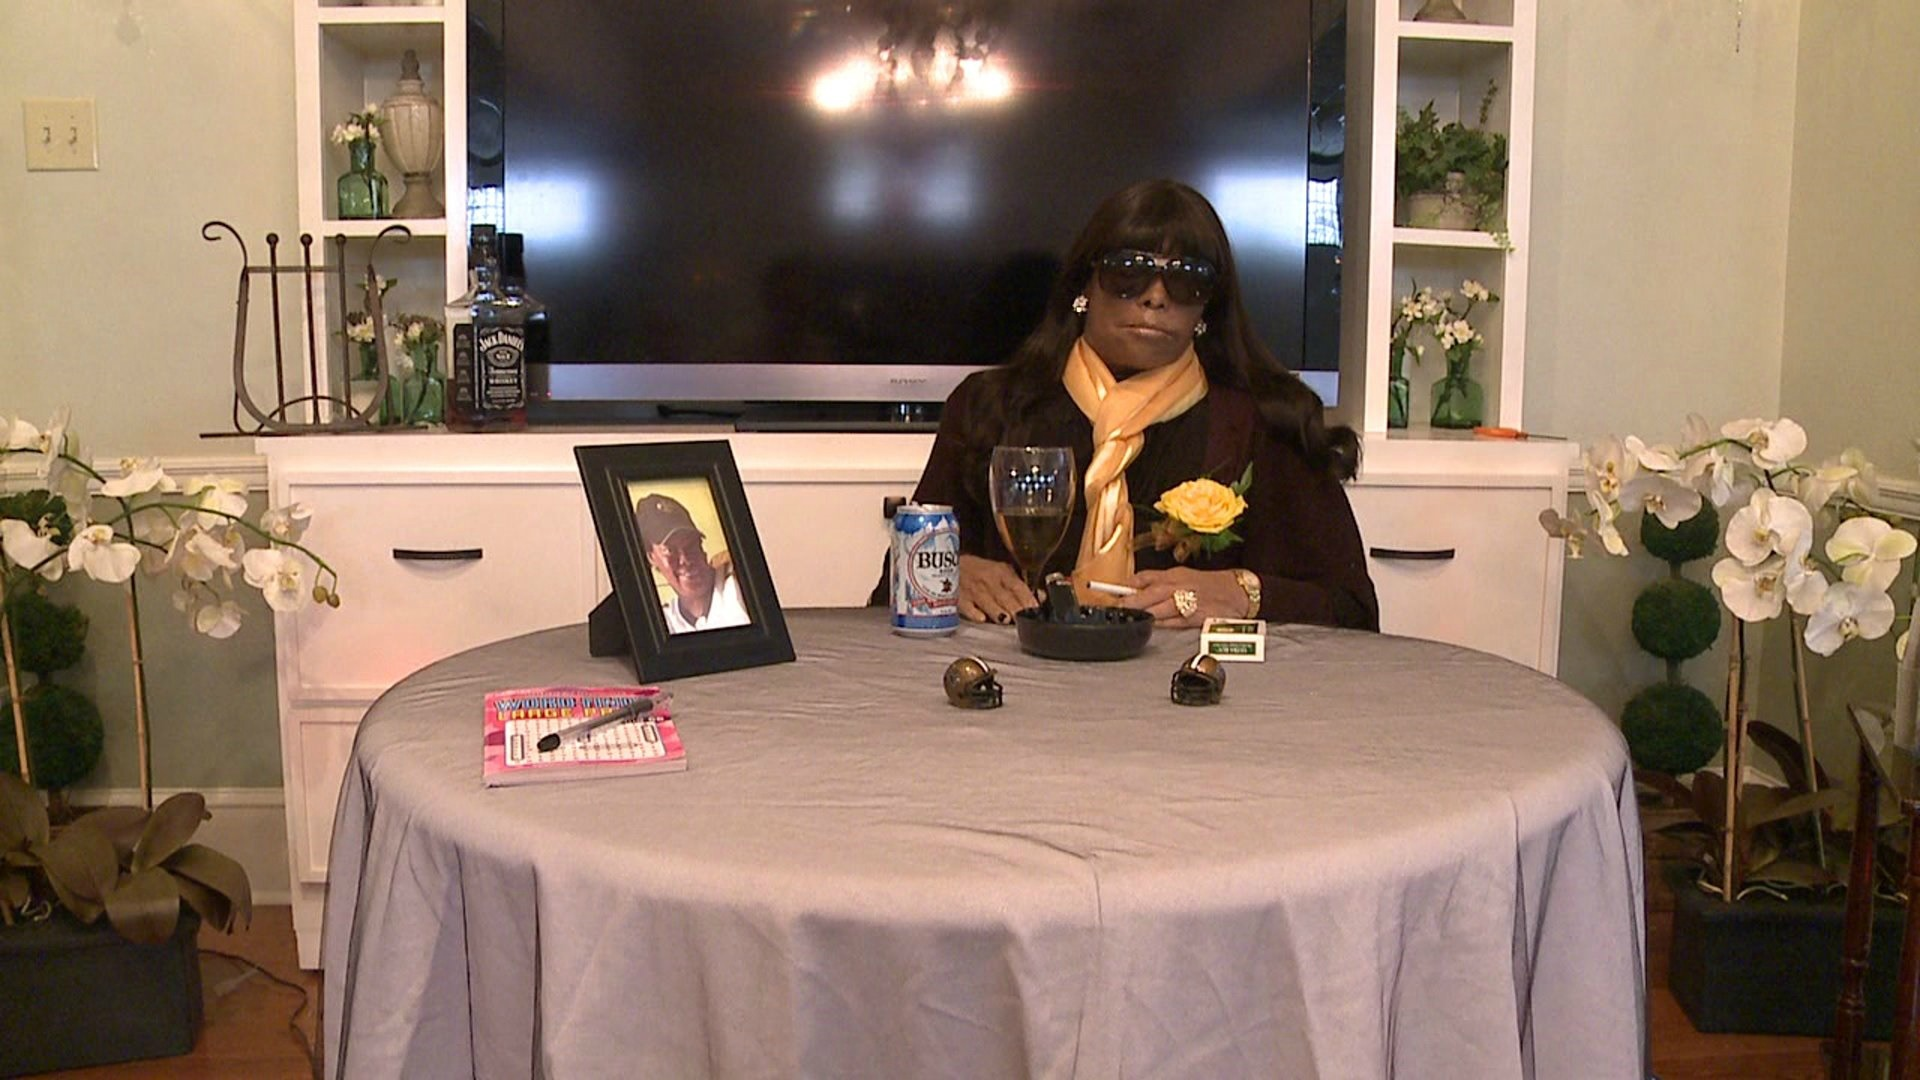 Dead grandmother gets best seat in the house at her disco-themed funeral